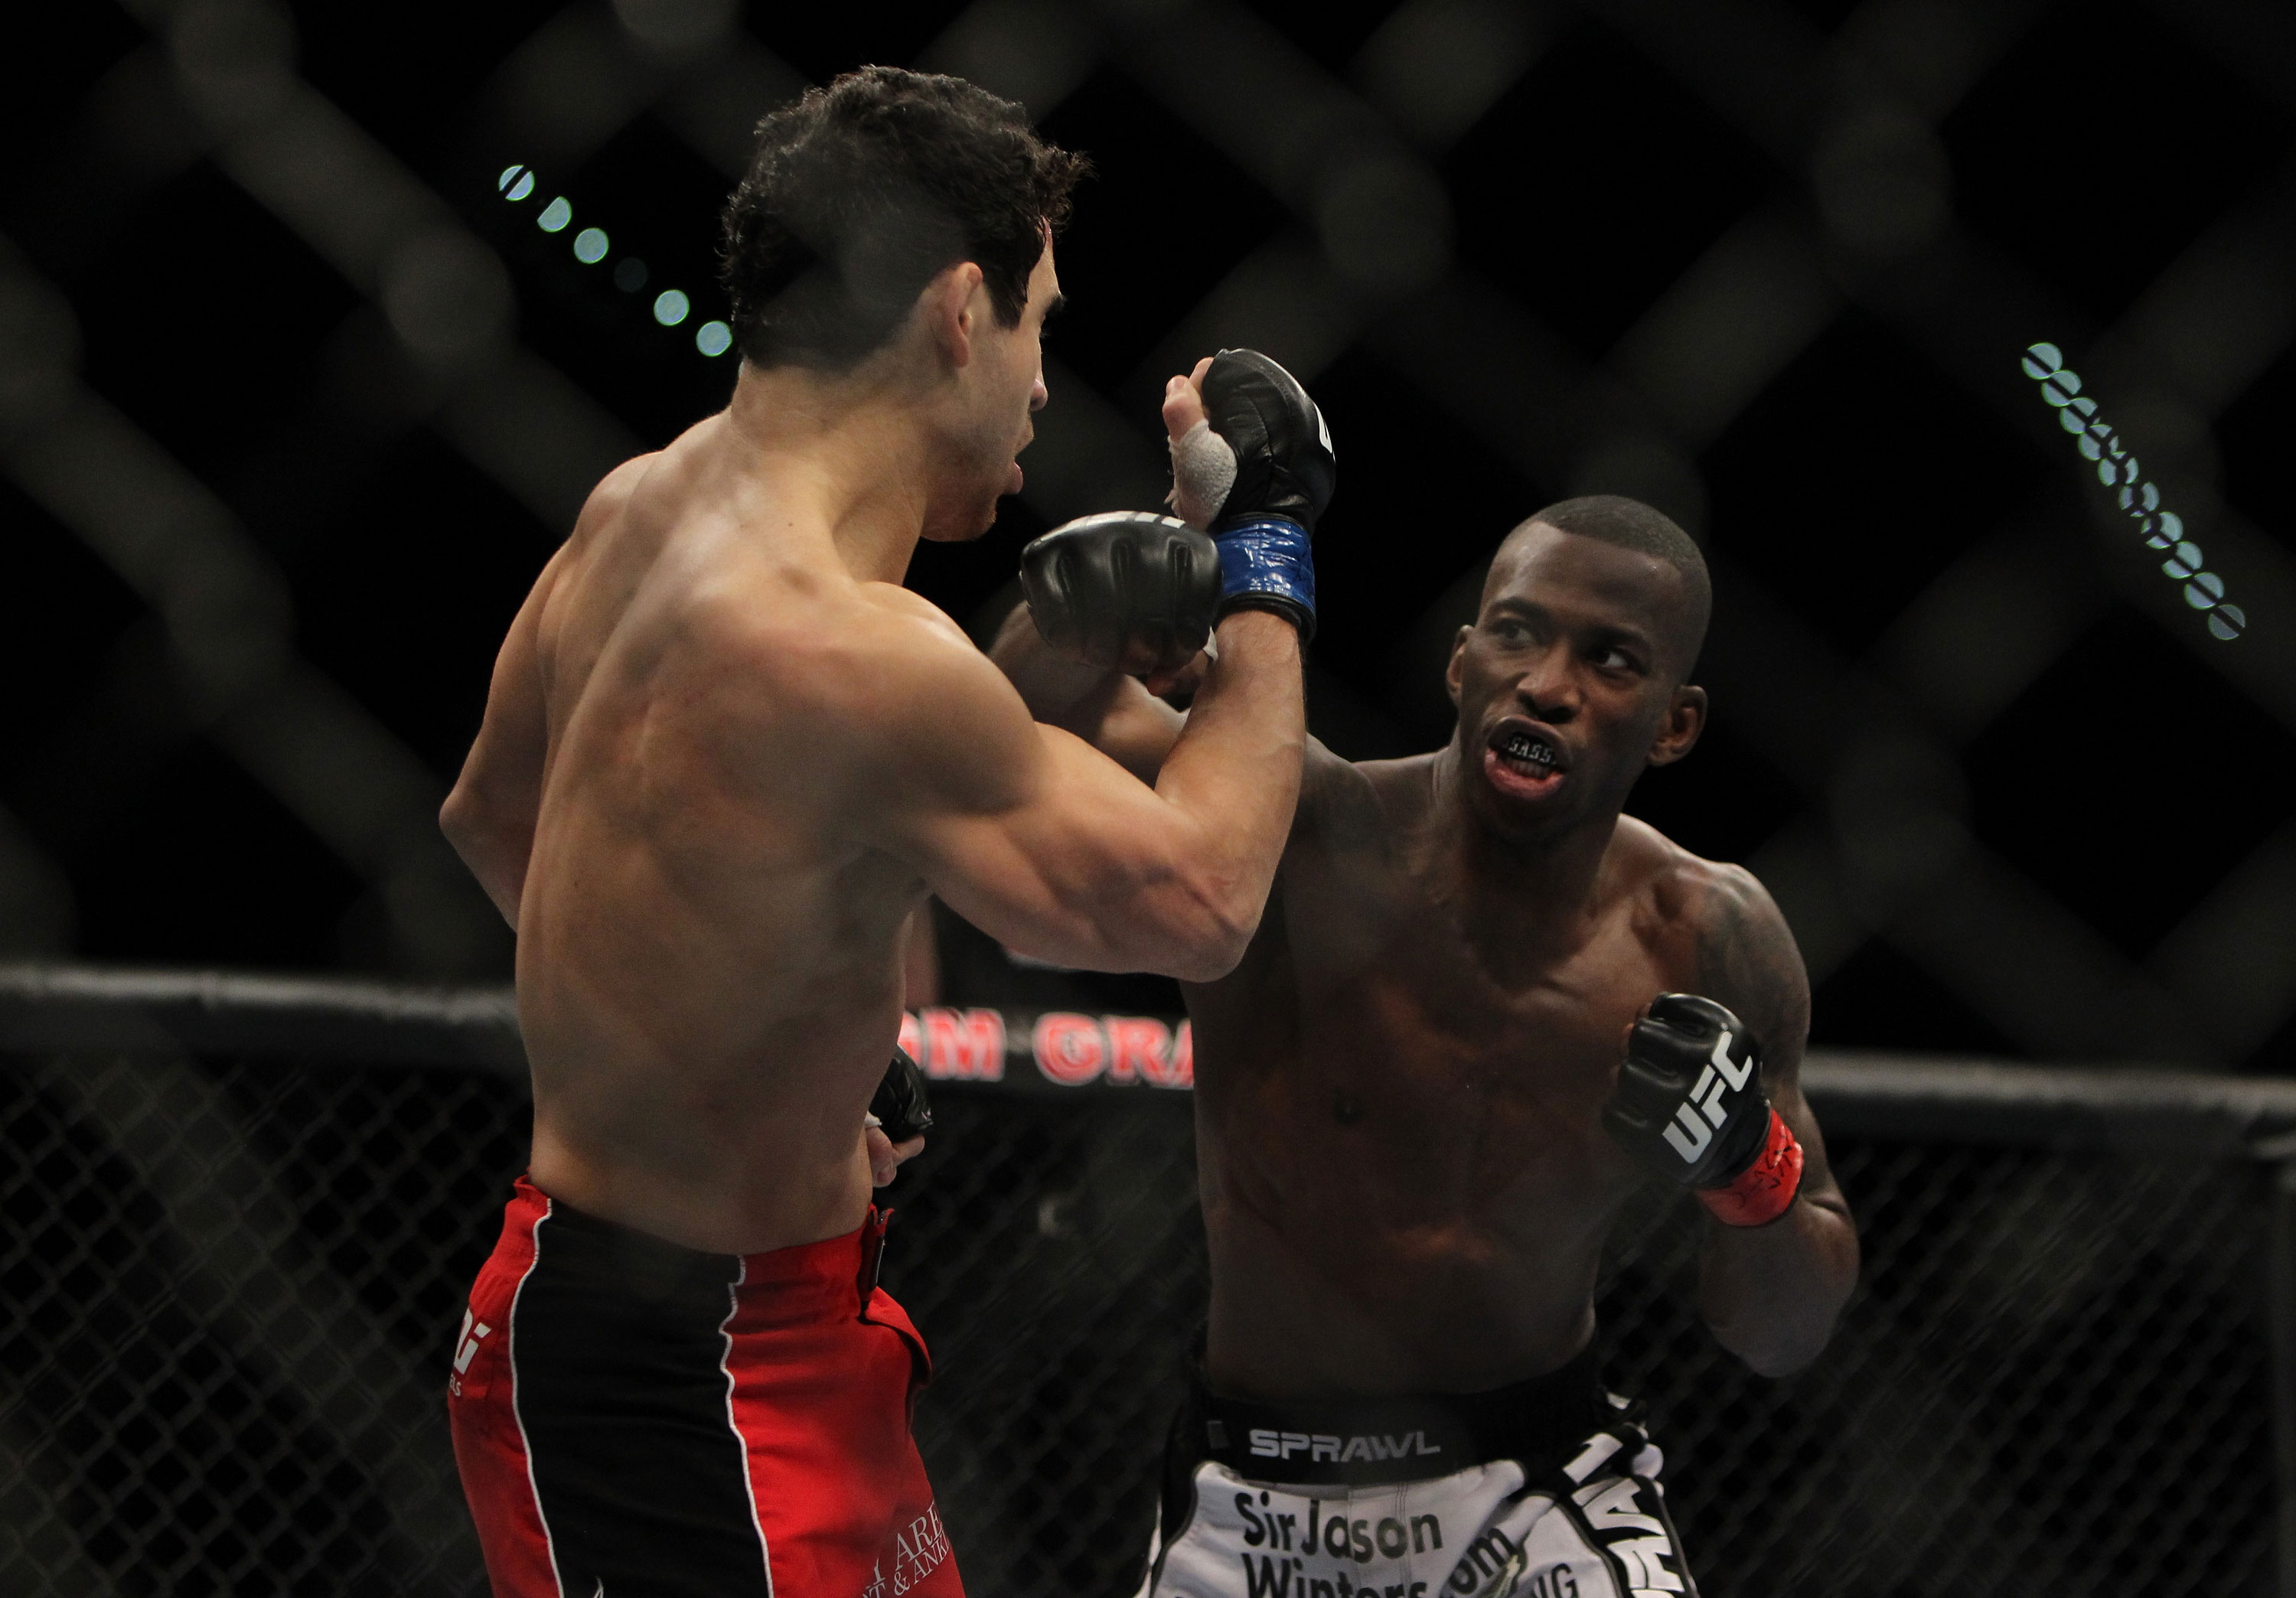 LAS VEGAS, NV - DECEMBER 30:  Anthony Njokuani (right) throws a punch at Danny Castillo (left) during the UFC 141 event at the MGM Grand Garden Arena on December 30, 2011 in Las Vegas, Nevada.  (Photo by Josh Hedges/Zuffa LLC/Zuffa LLC via Getty Images) *** Local Caption *** Anthony Njokuani; Danny Castillo